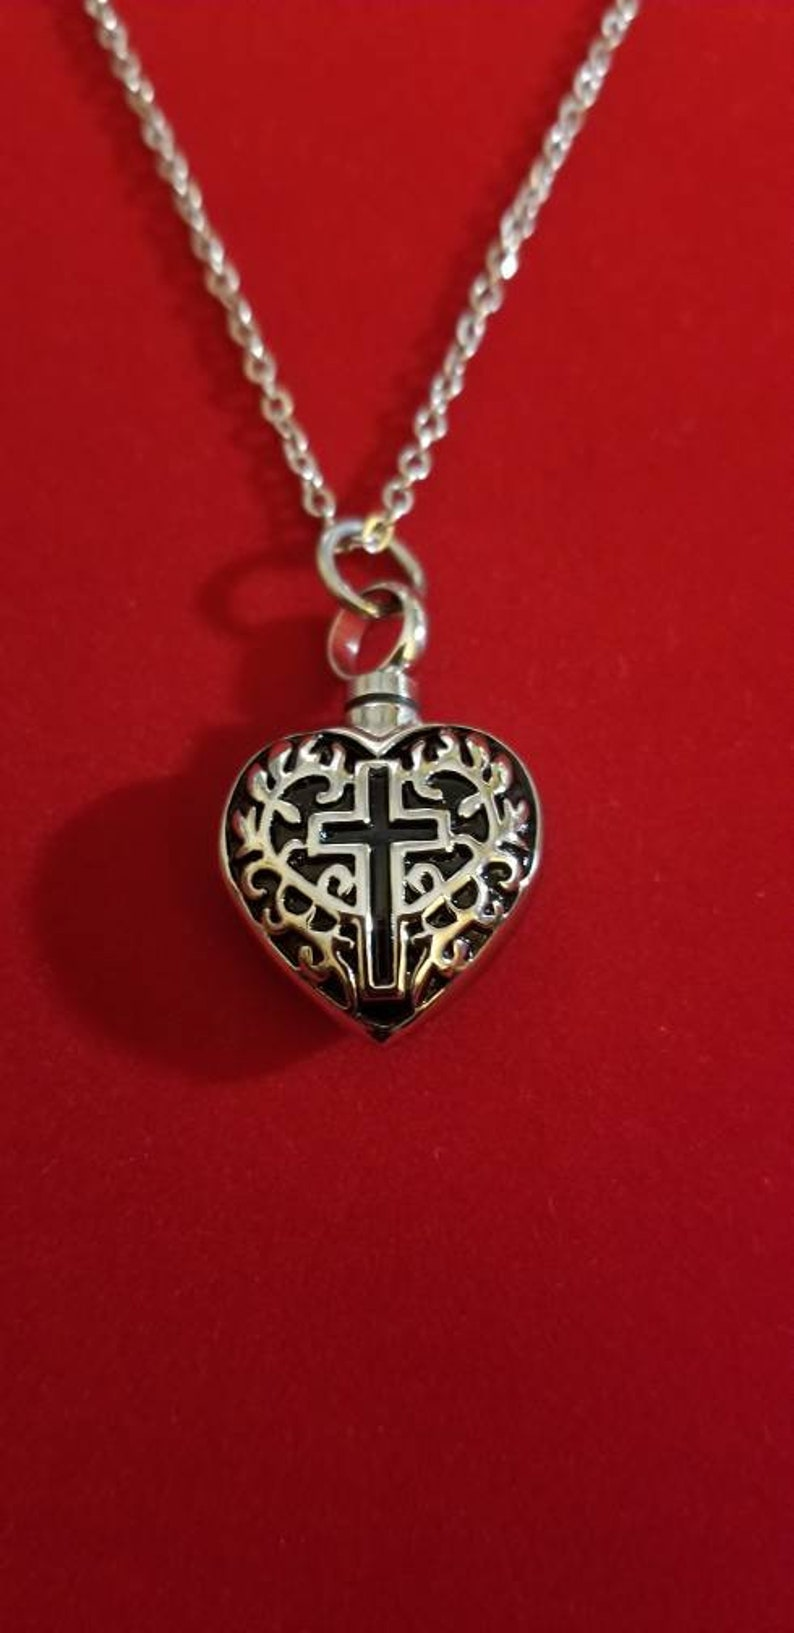 Silver Cross Heart Urn Necklace Ashes Father Urn Keepsake Memorial Cremation Necklace Mother Cremation Jewelry Urn Jewelry